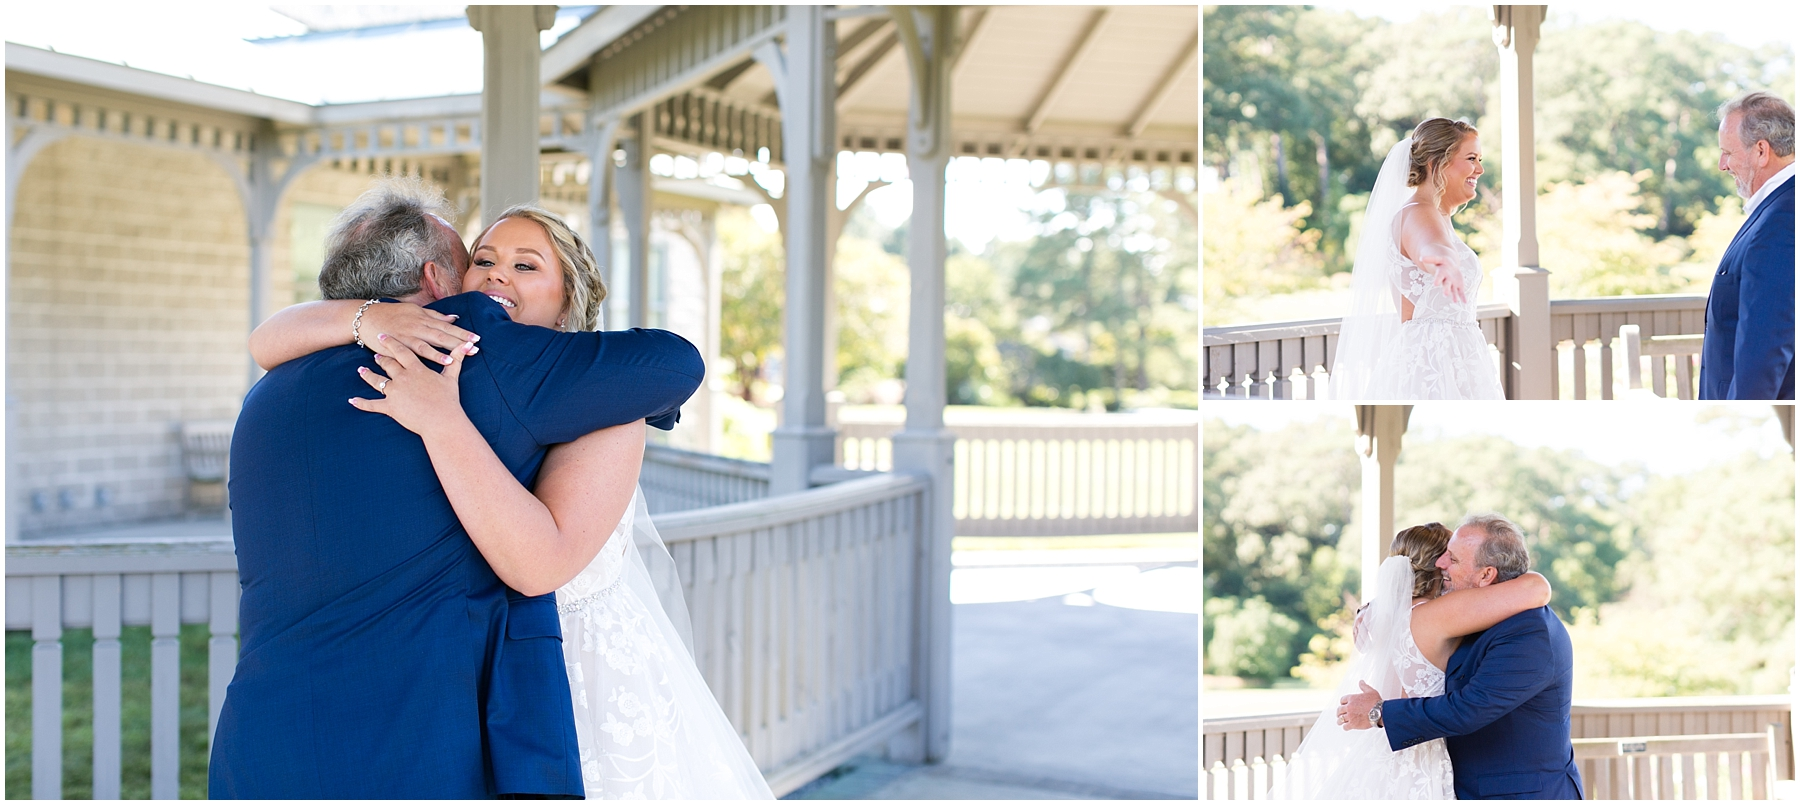 norfolk botanical gardens wedding day, candid wedding photography, jessica ryan photography